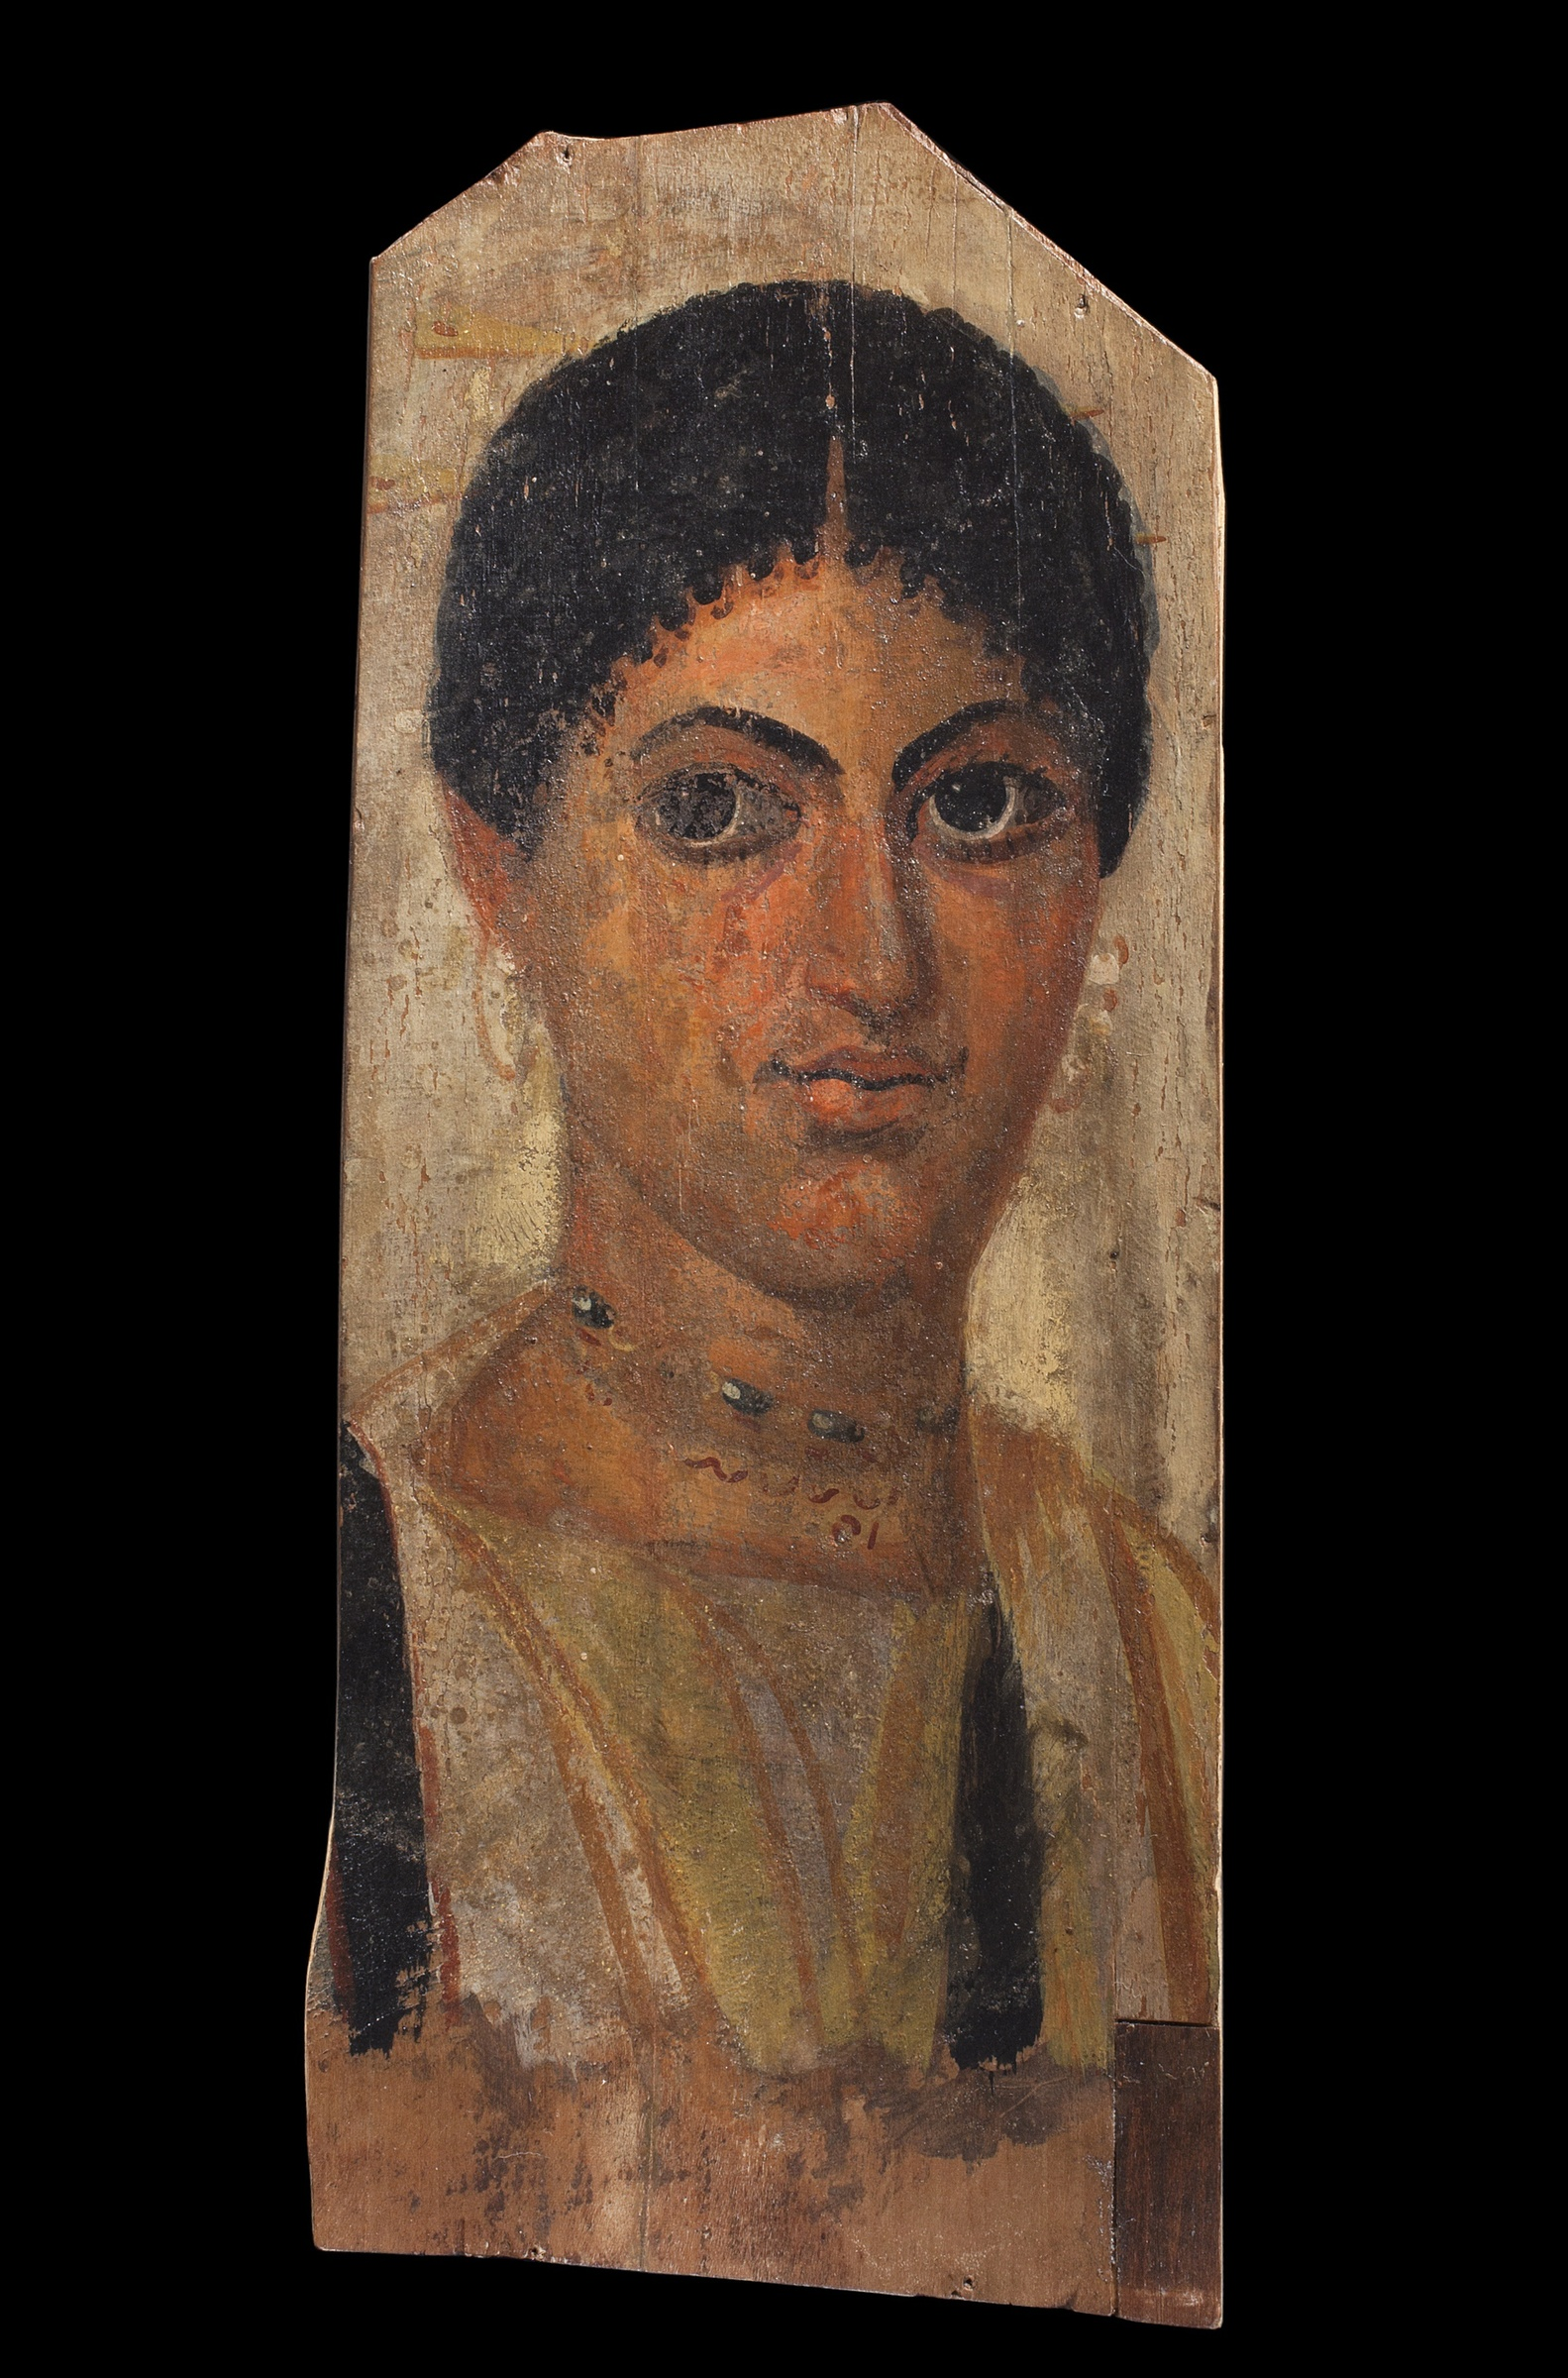 Pittura Romana Fayum An Egyptian Tempera And Encaustic Fayum Panel Portrait Of A Young